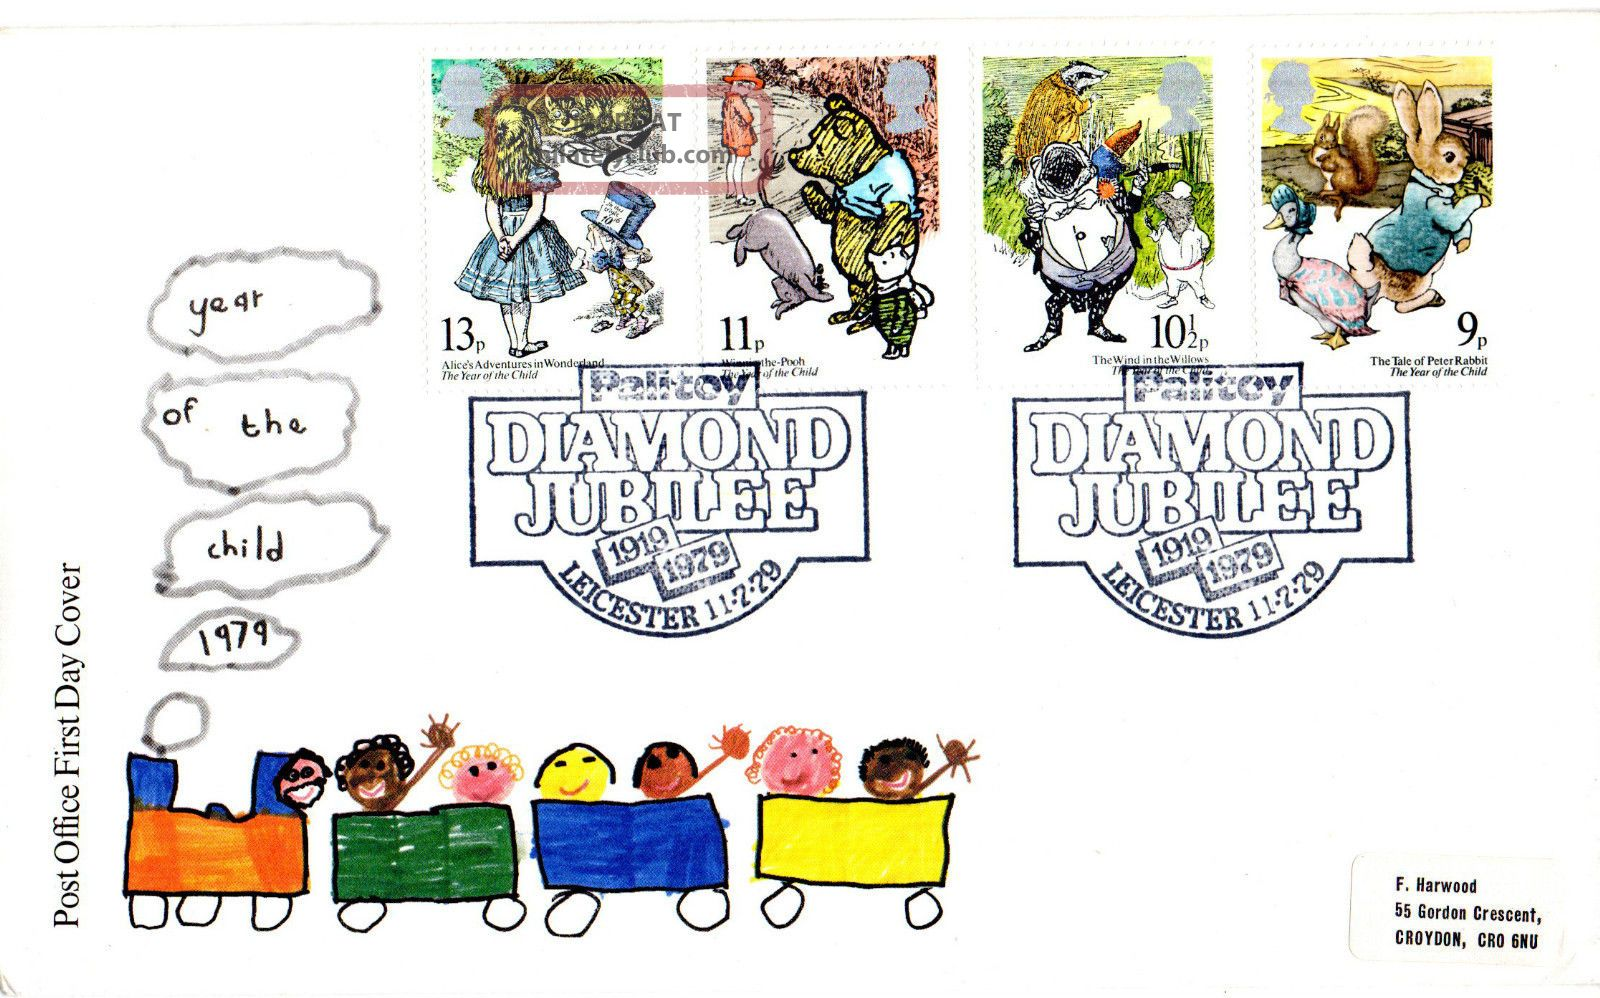 11 July 1979 International Year Of The Child Po First Day Cover Palitoy Shs Topical Stamps photo